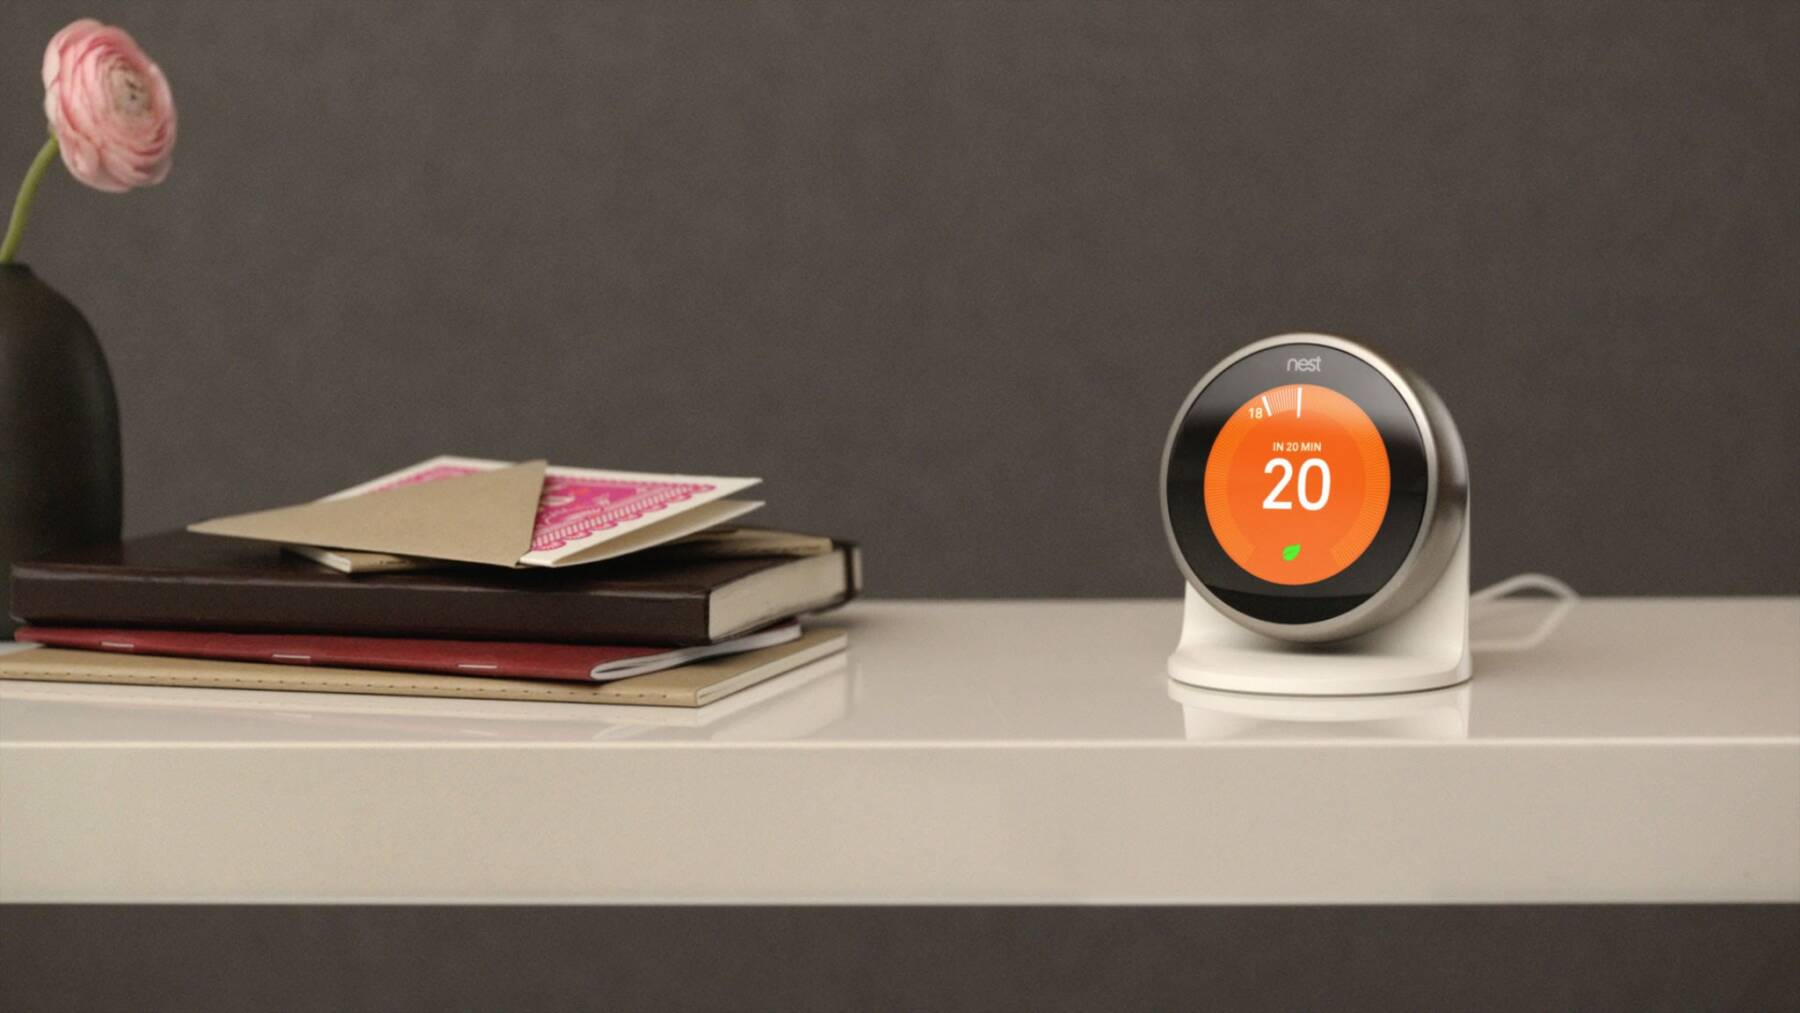 The nest learning thermostat on a desktop being used